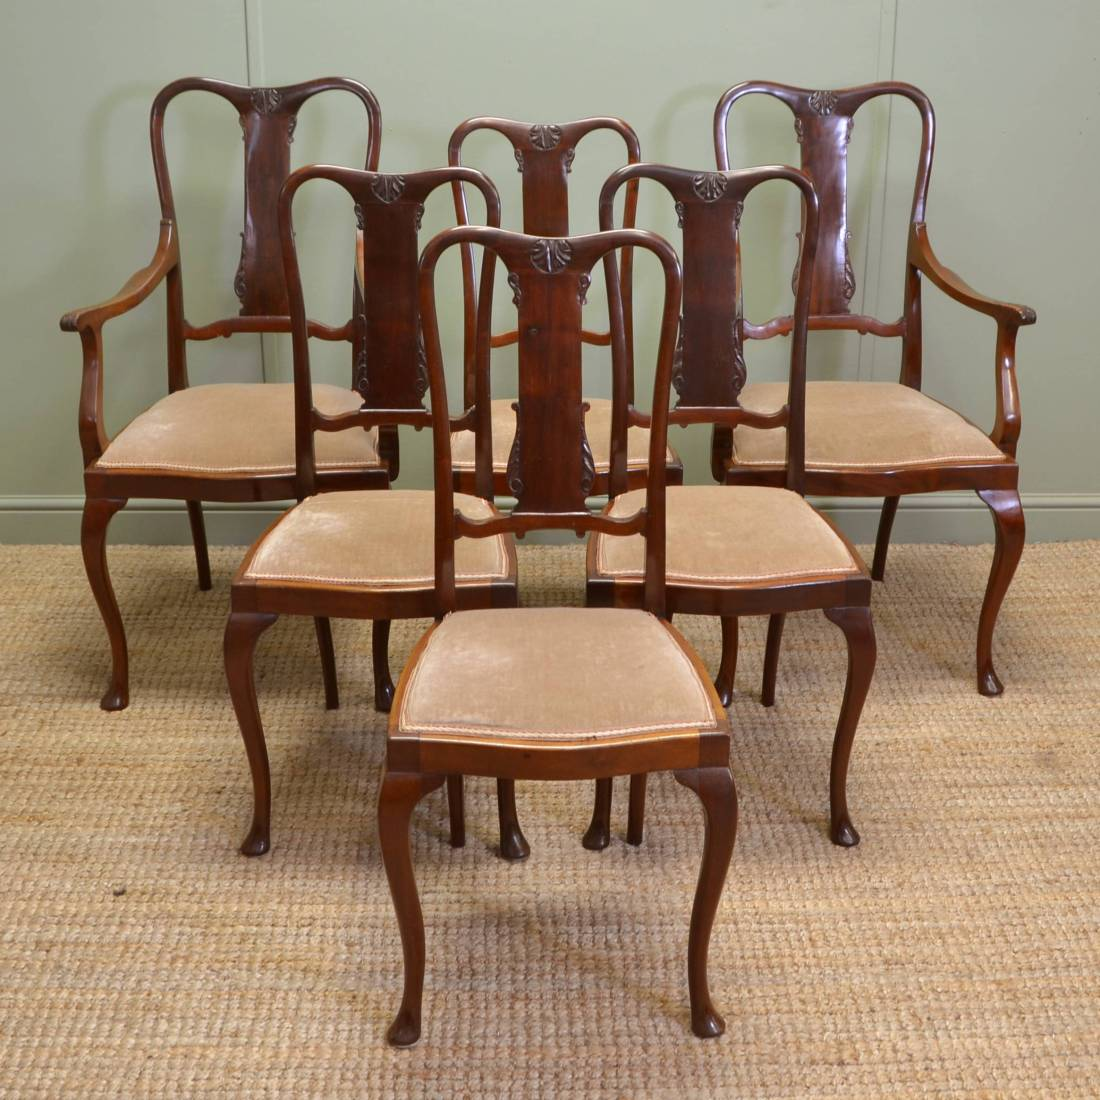 Fine Dining Chairs: Quality Set Of Six Fine Antique Edwardian Dining Chairs